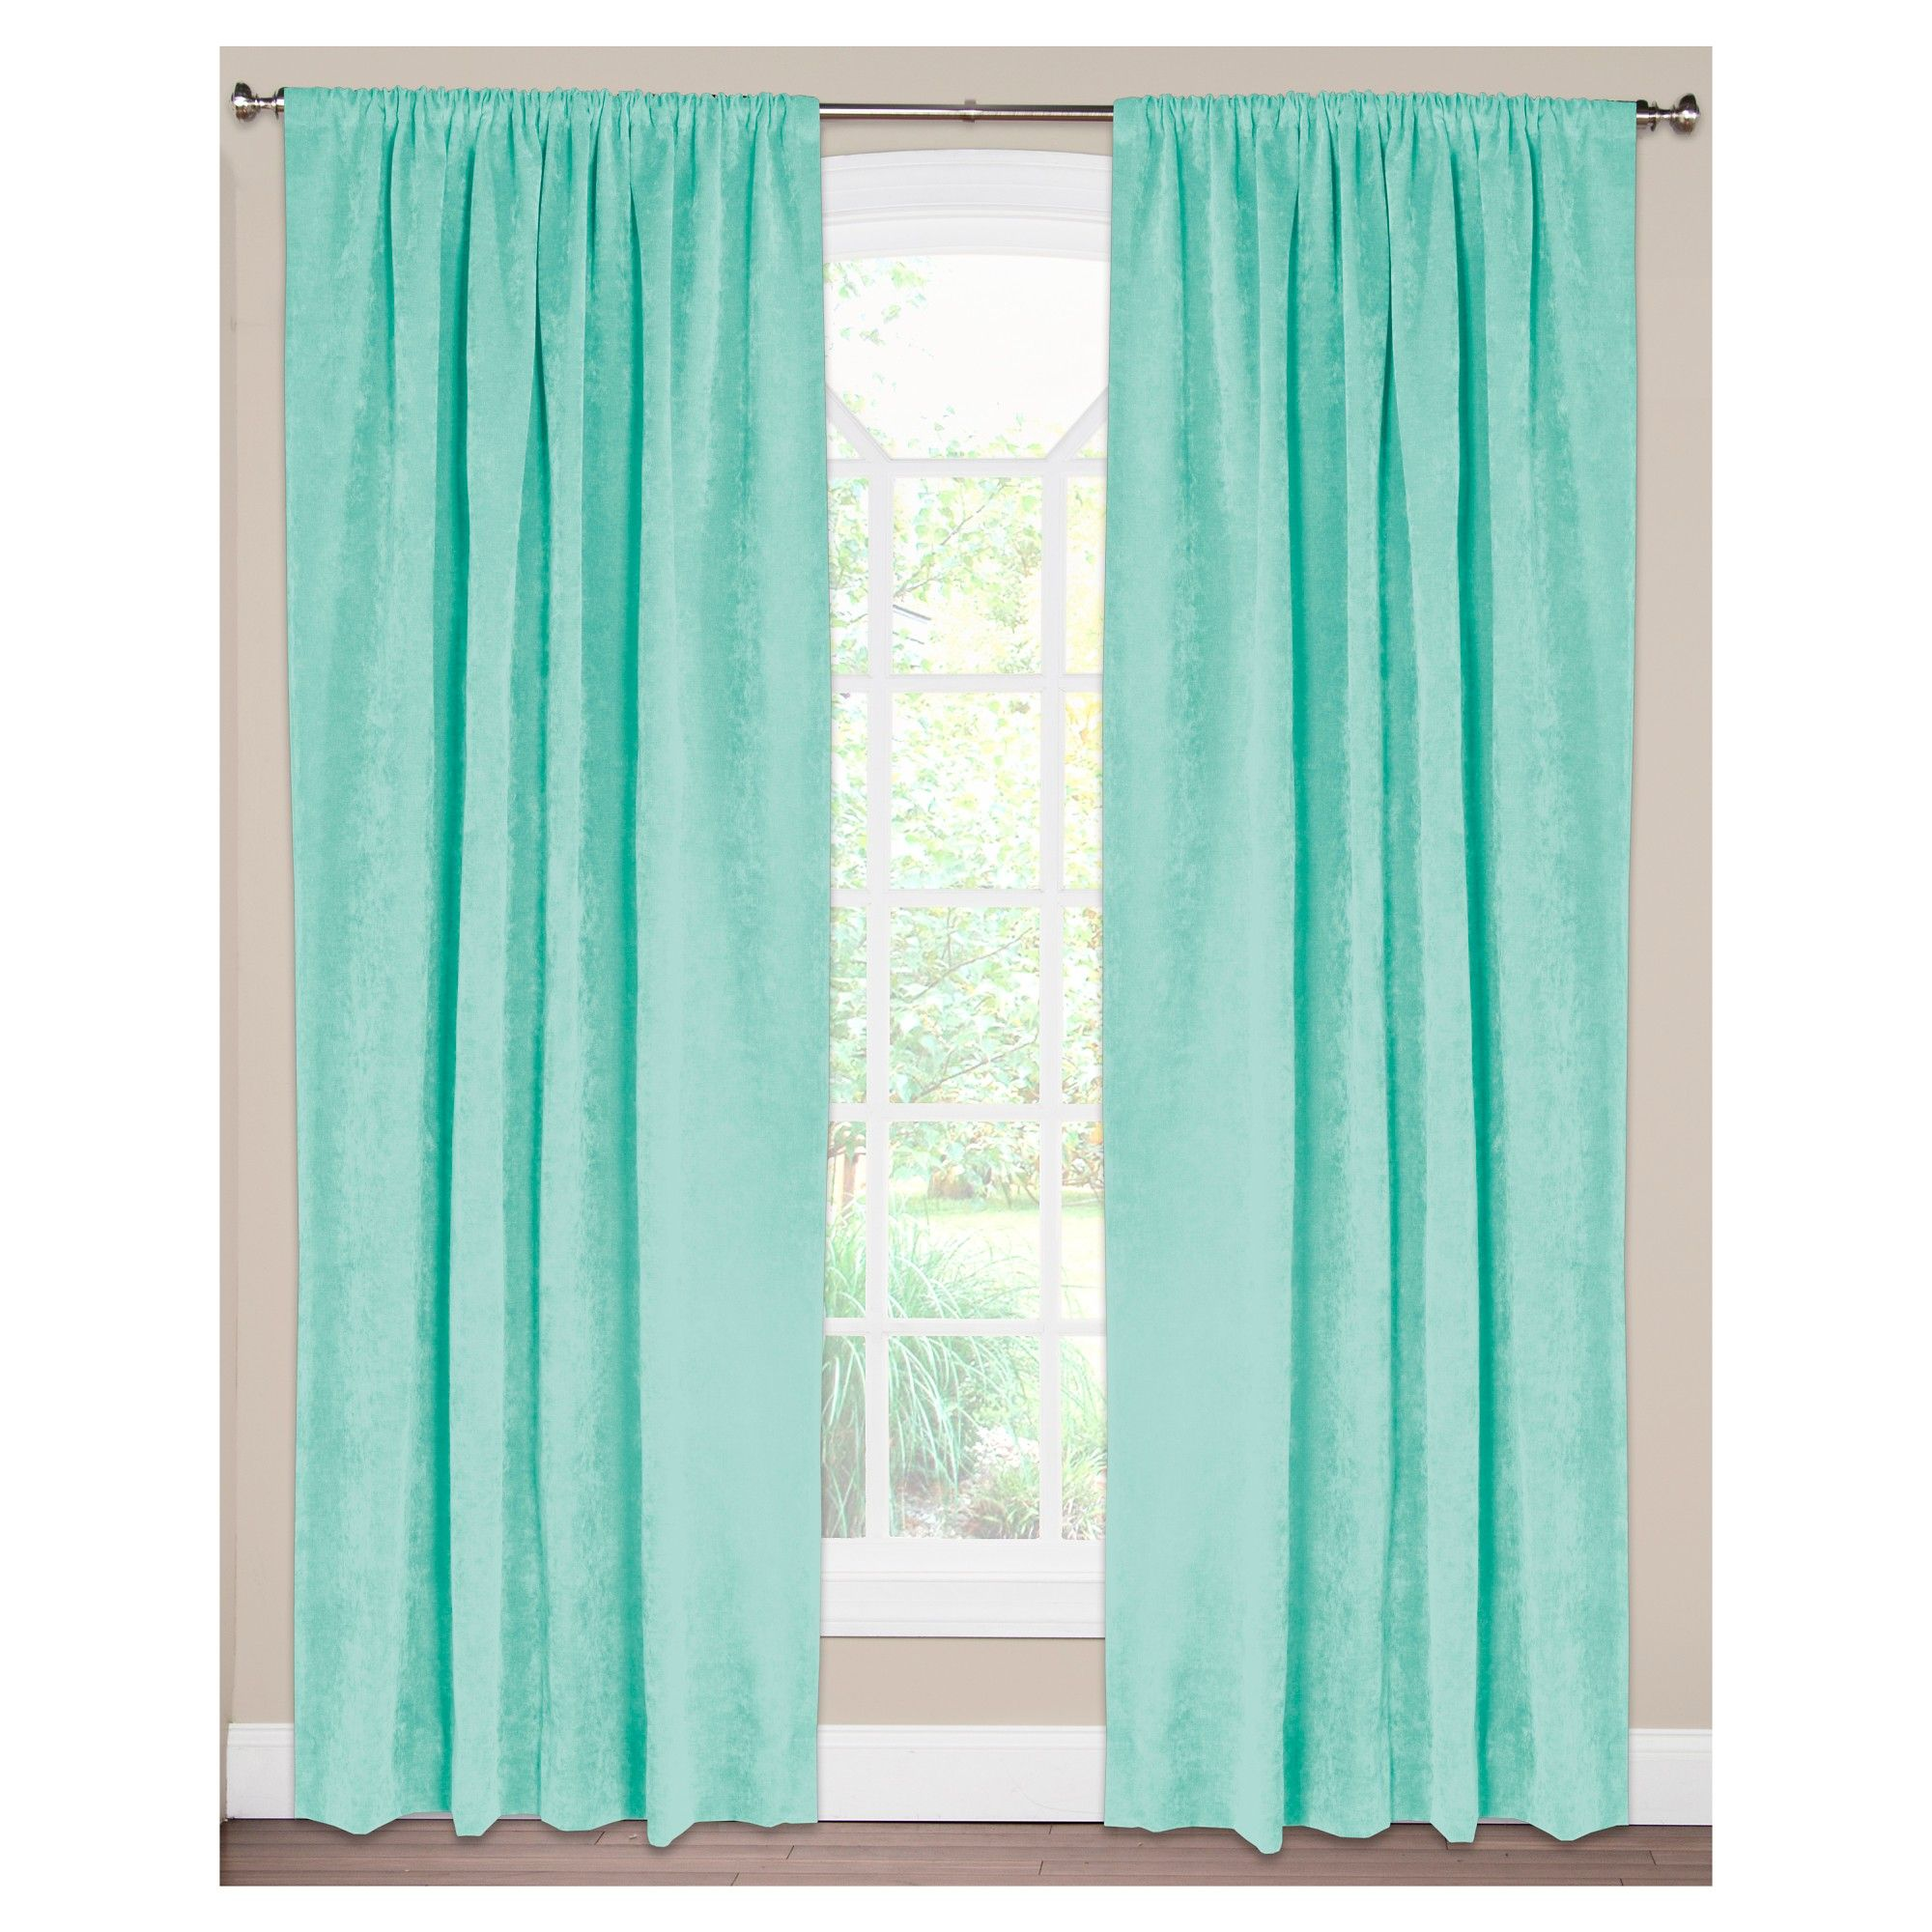 Siscovers Padma Spa Curtain Panel Padma Spa 52 X 96 Panel Curtains Solid Curtains